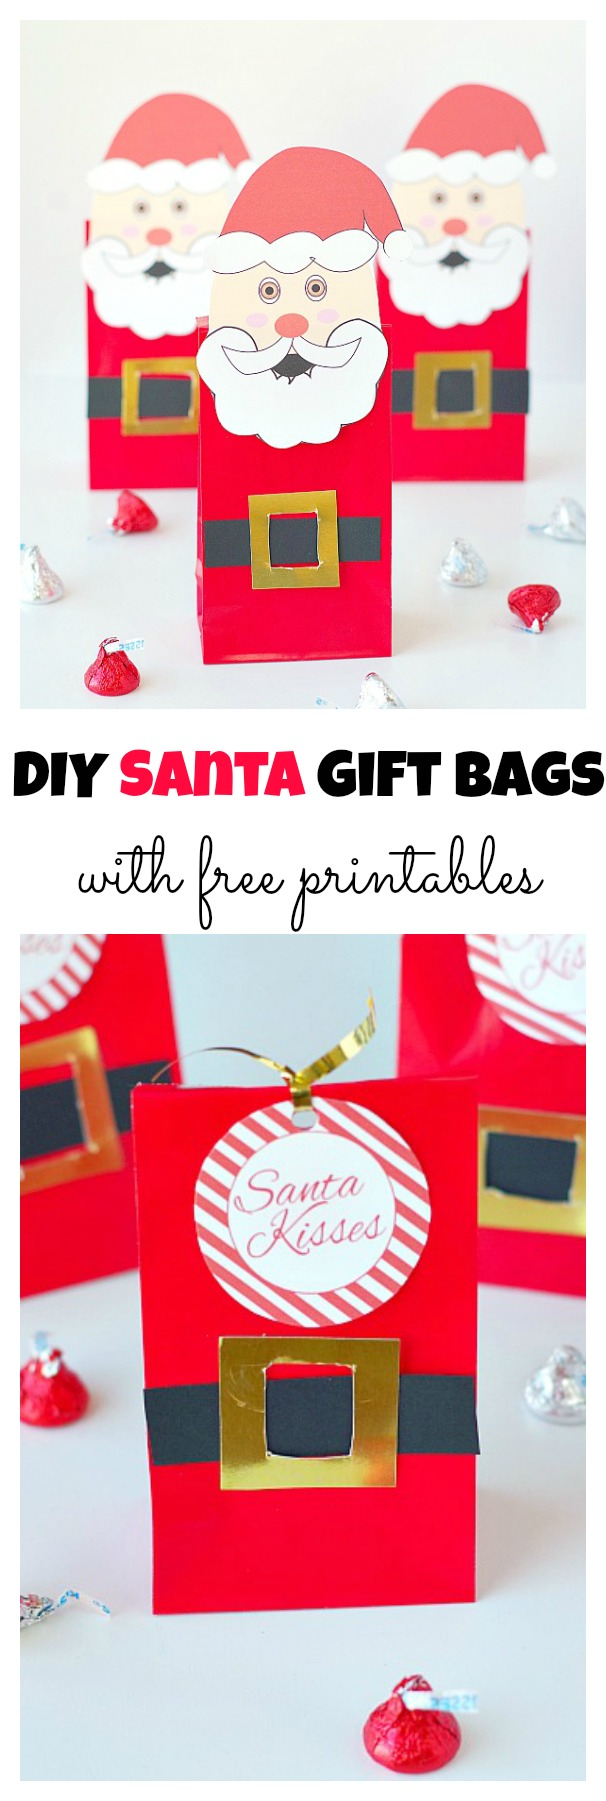 DIY Santa Gift Bags with free printables